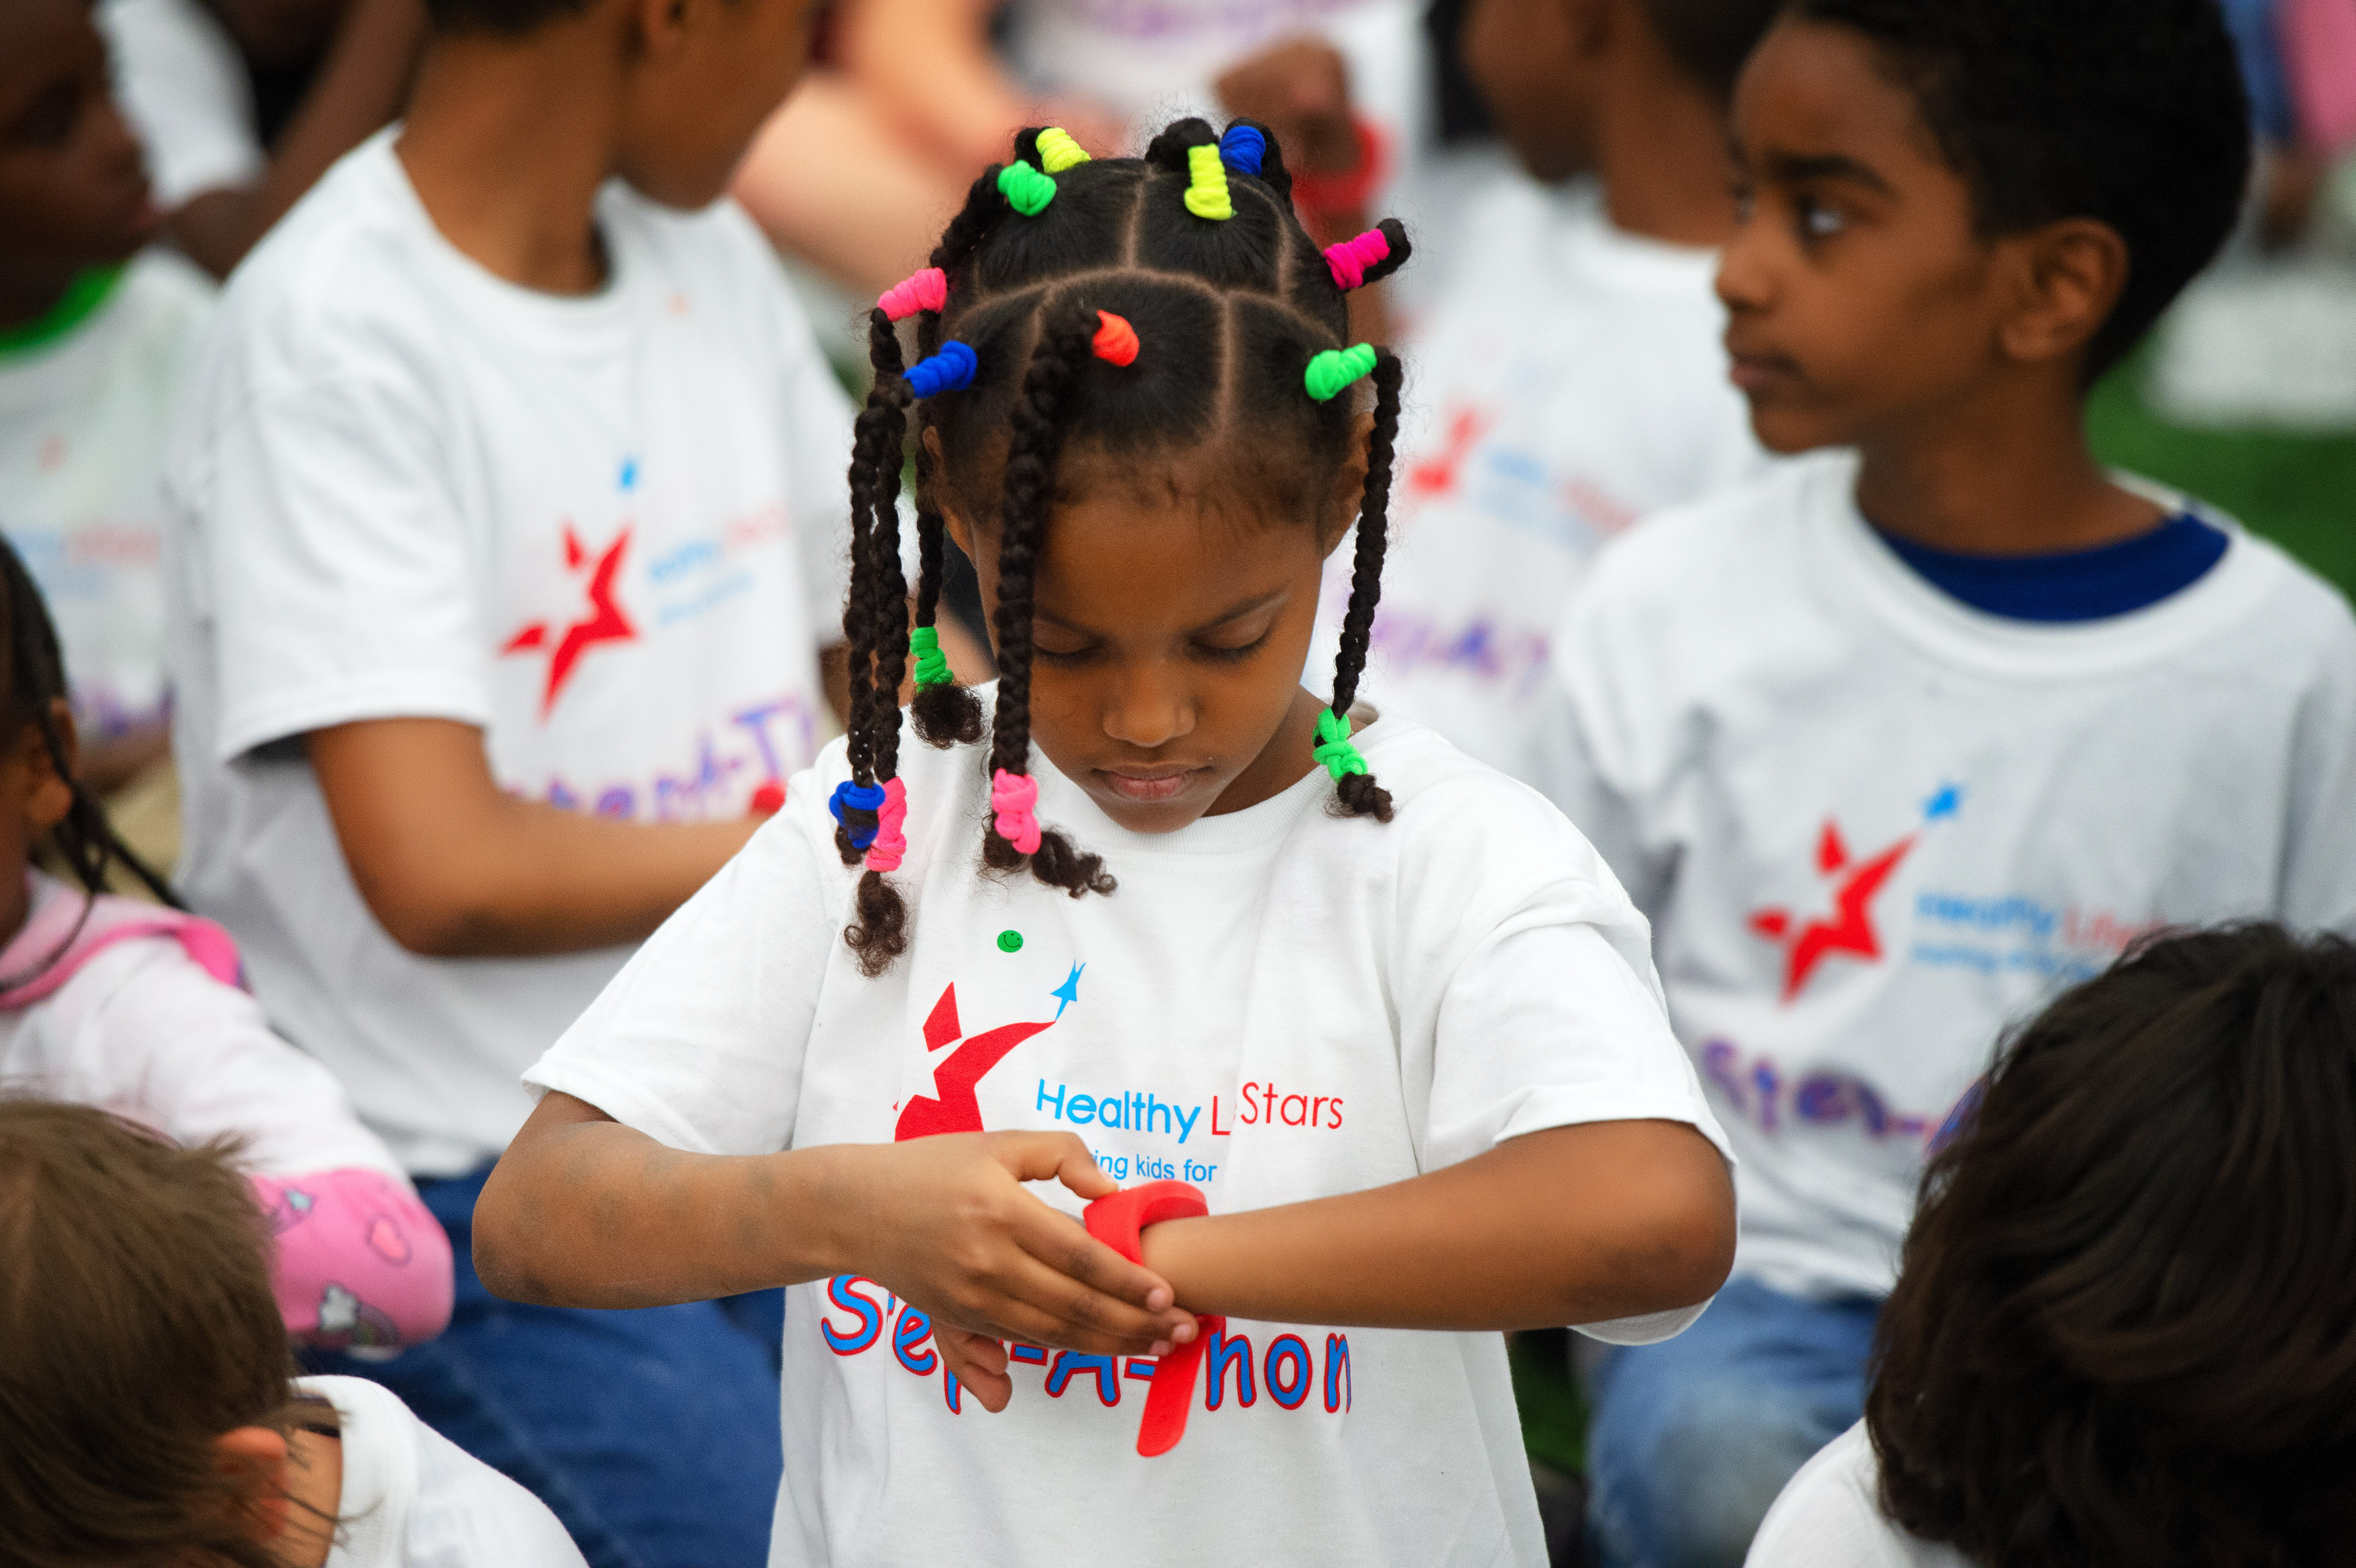 A child checks her wrist band and the Healthy LifeStars event